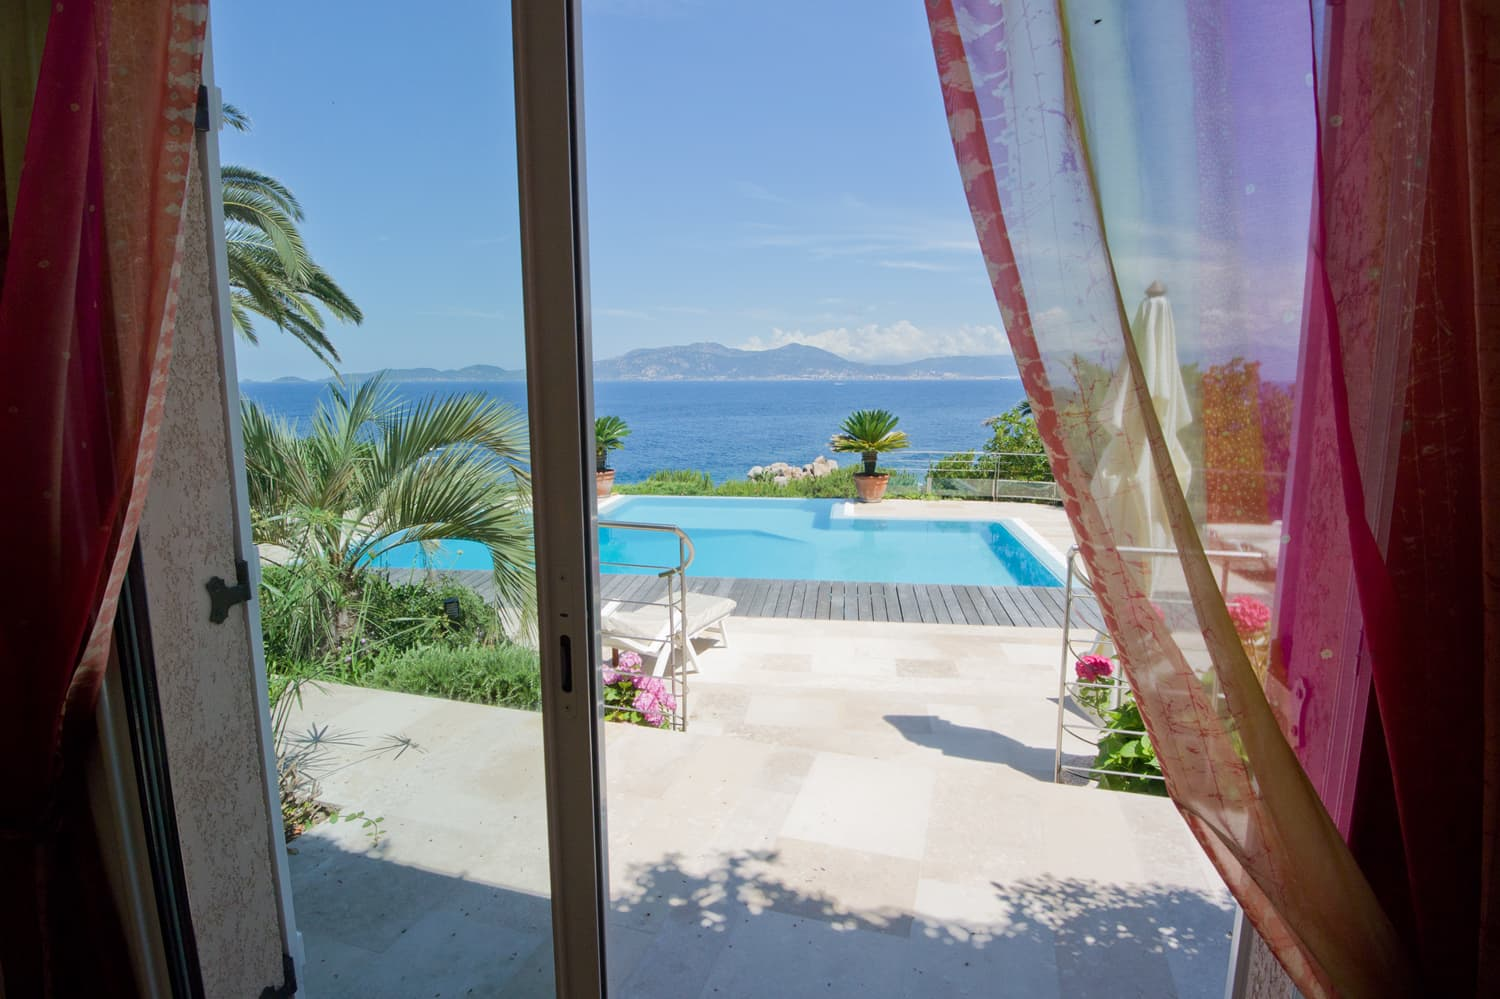 View of pool and Mediterranean Sea in Corsica holiday villa